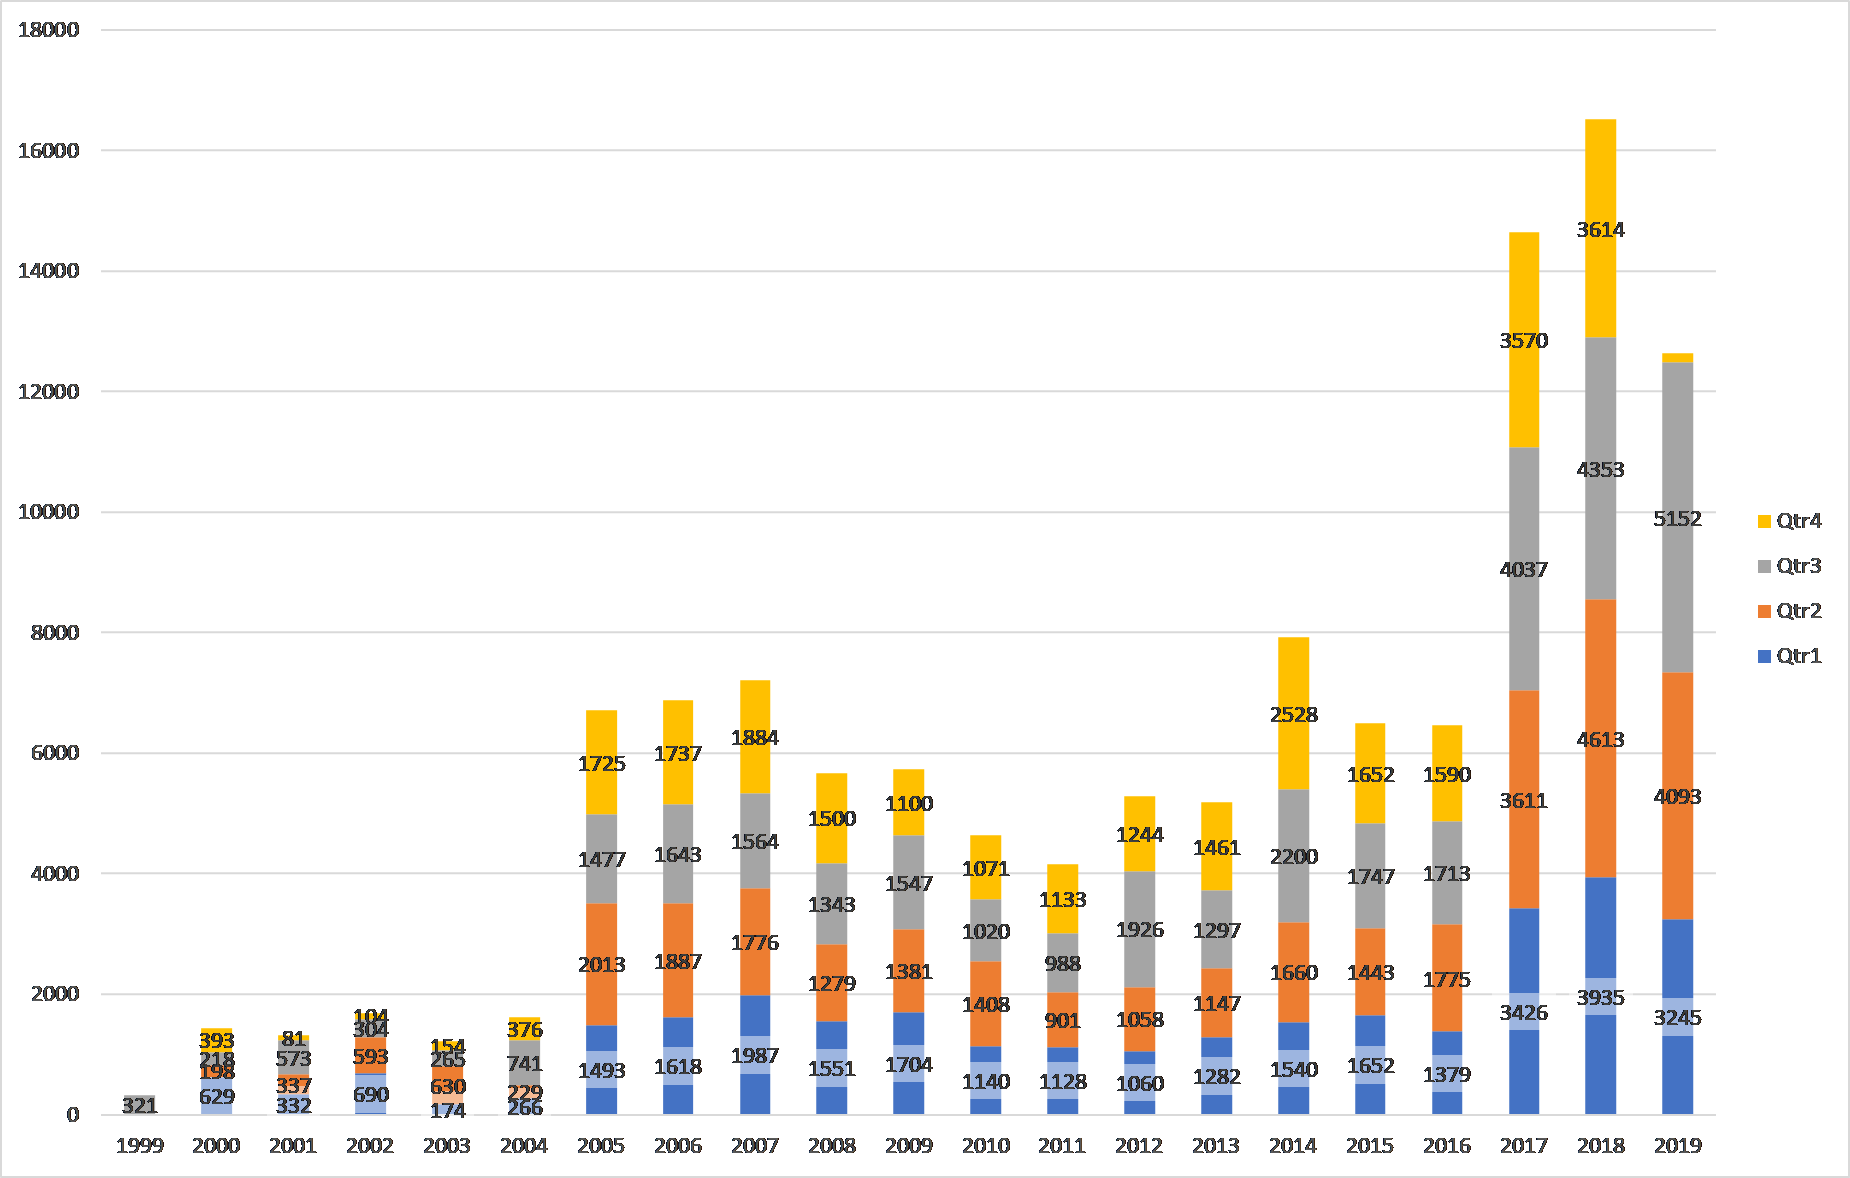 Comparison of Populated CVE Entries by Year for All Quarters - CYQ32019